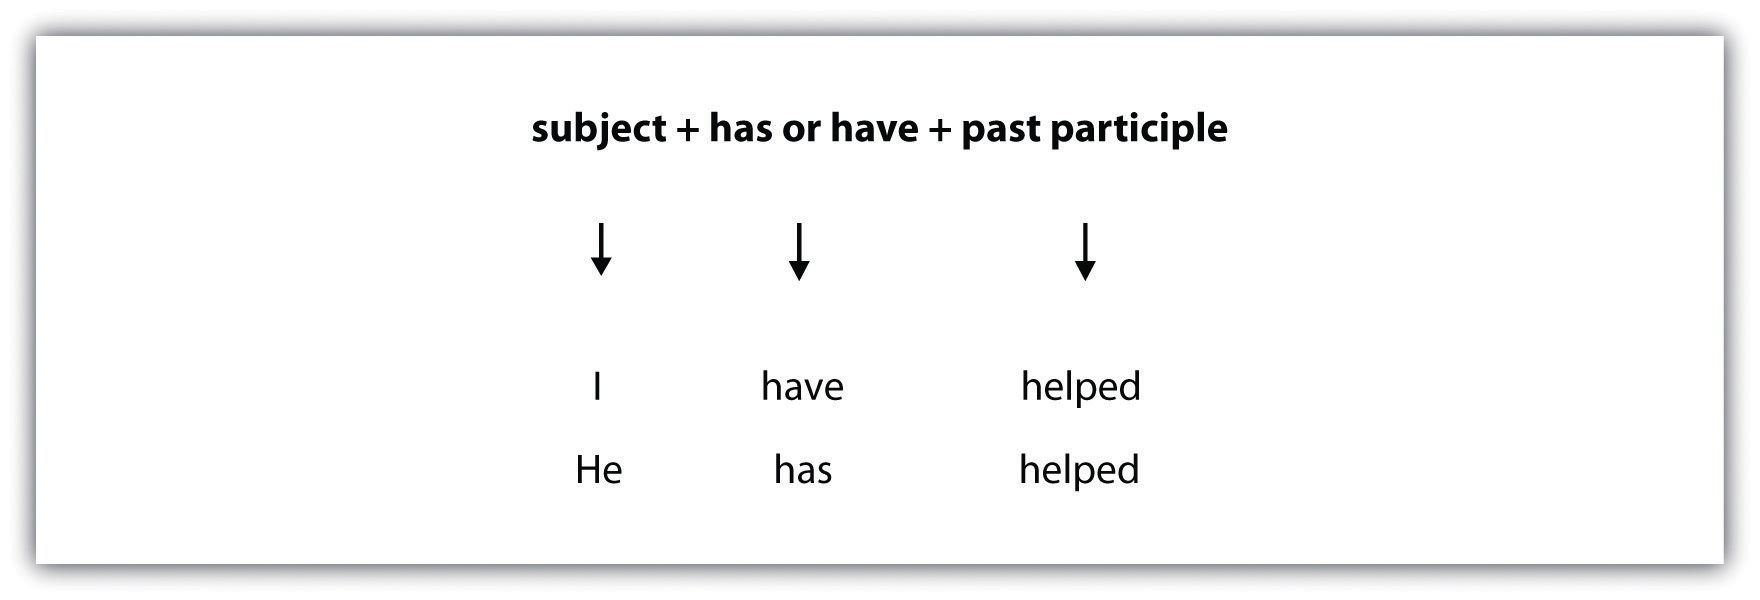 writing for success flatworld in the previous section we defined present perfect verb tense as describing a continuing situation or something that has just happened